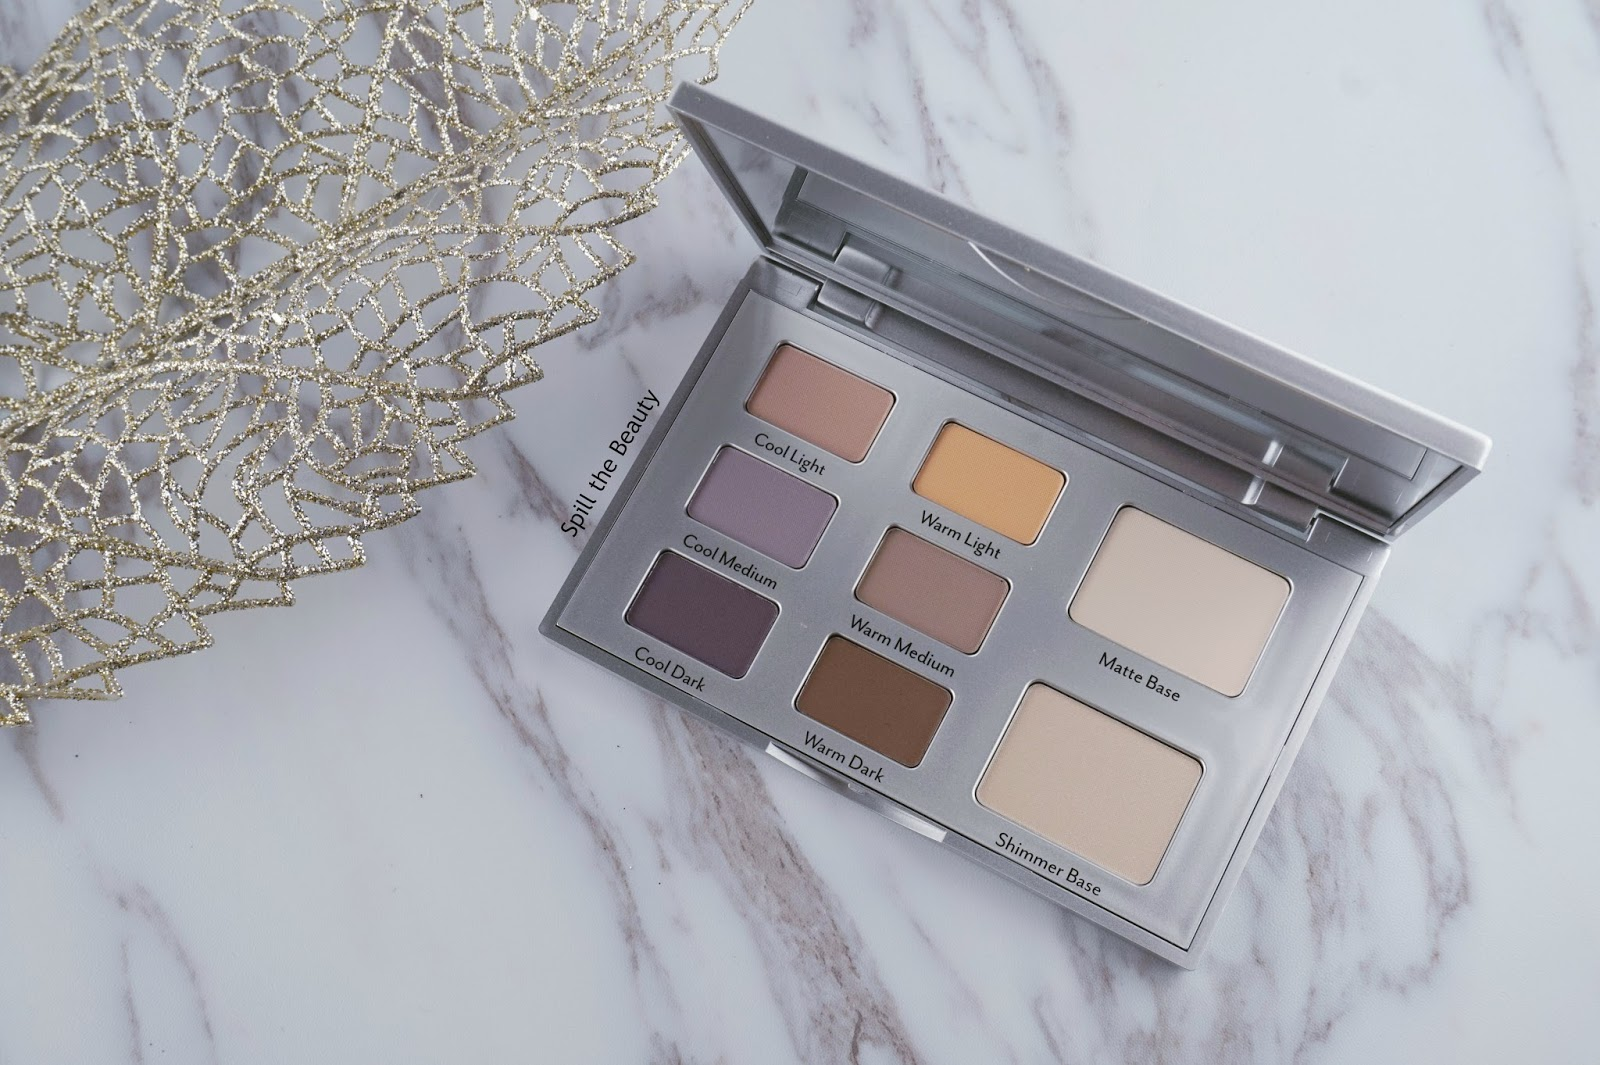 Cargo 'Eye Contour Eye Shadow Palette 01' – Review, Swatches, and Look